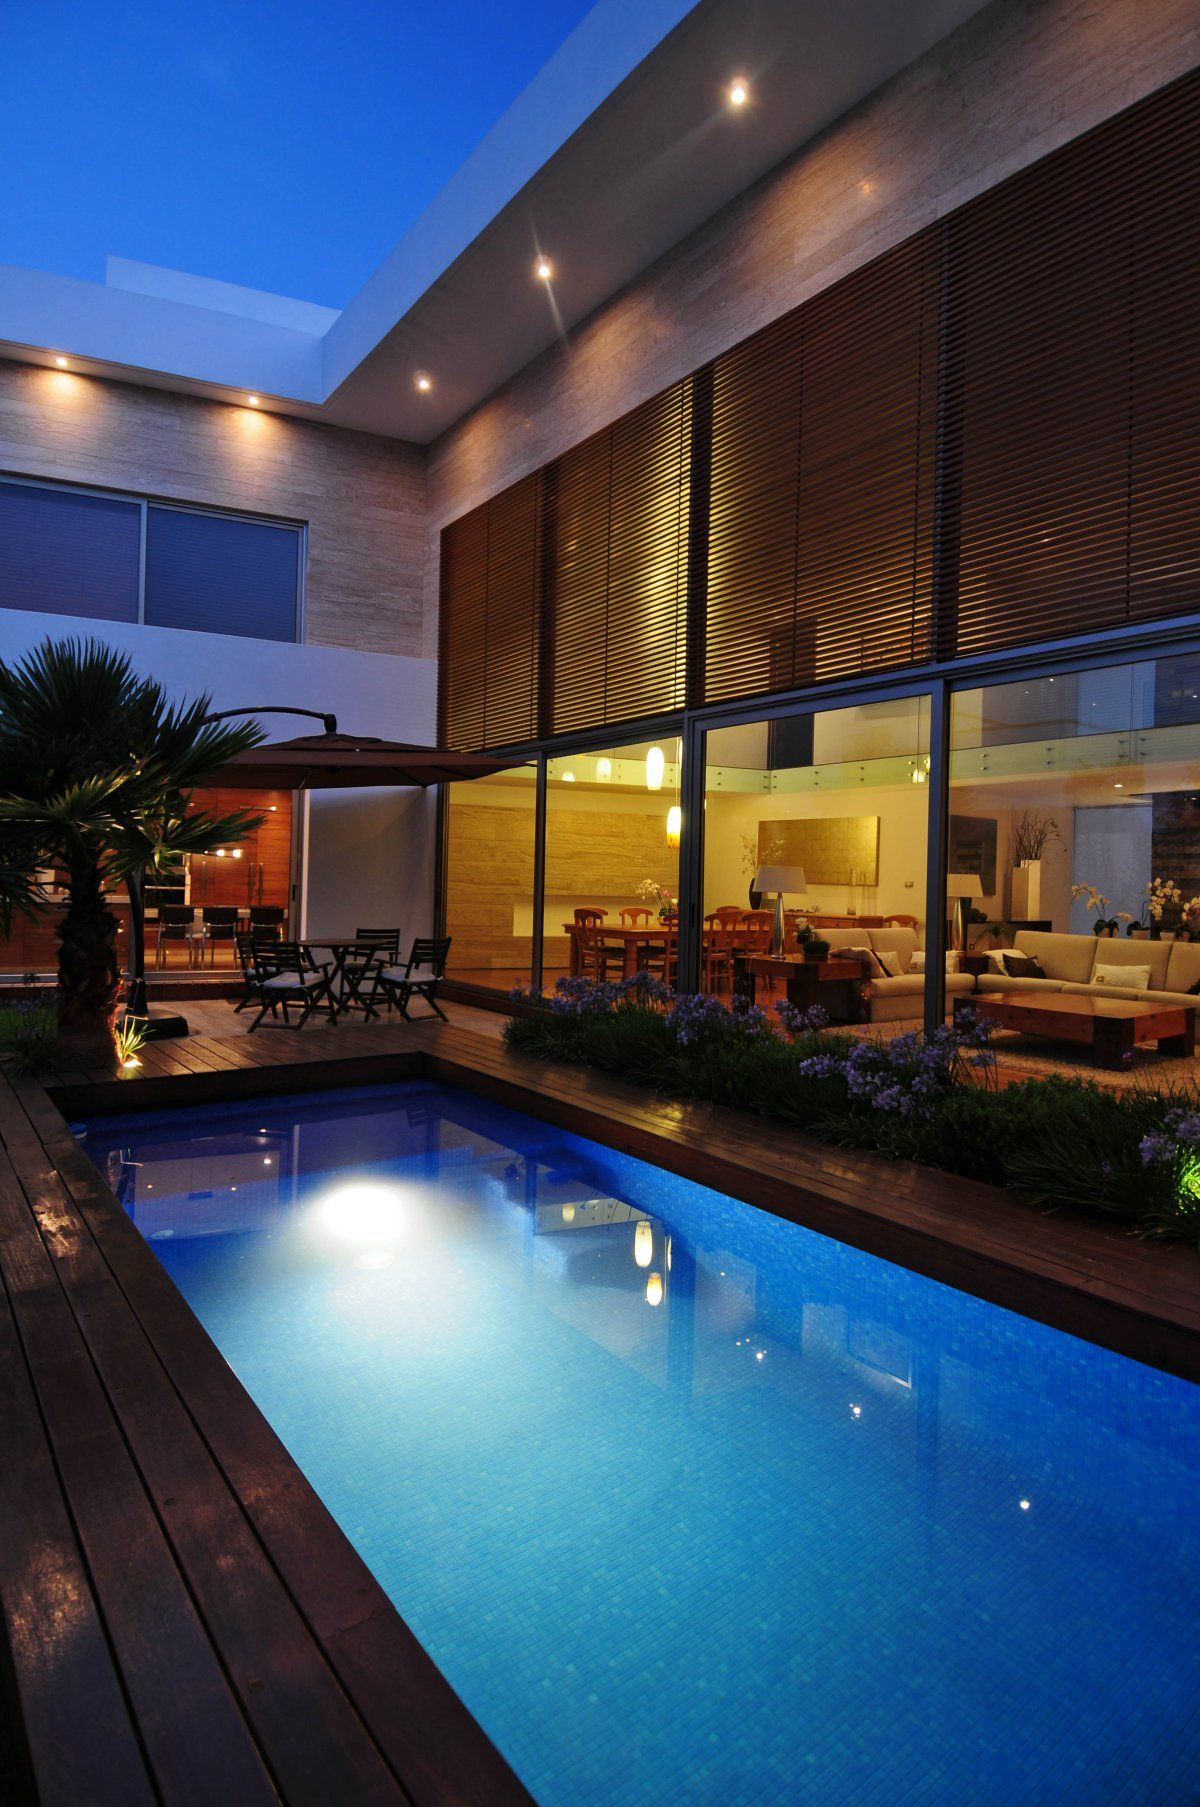 Wonderful modern house design with glass wall and small lamp light also wooden brown floor complete · swimming pool